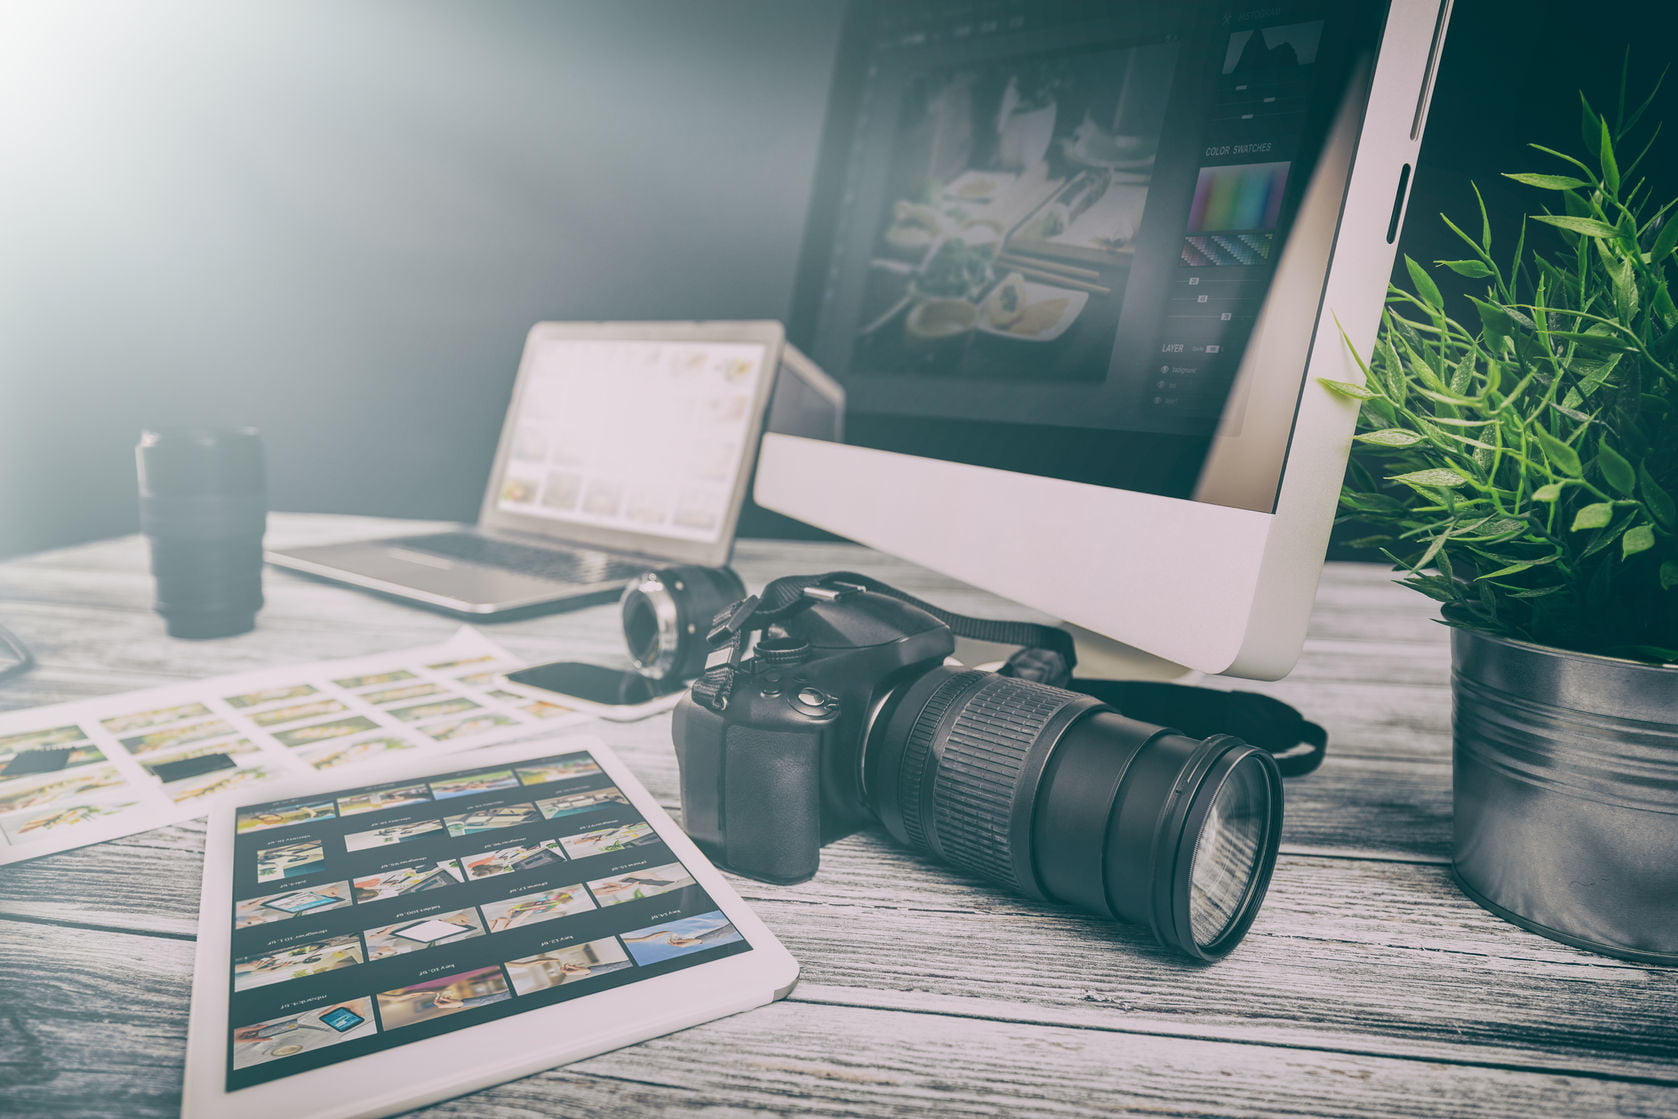 The Best Laptops for Photo Editing You Can Buy | Digital Trends